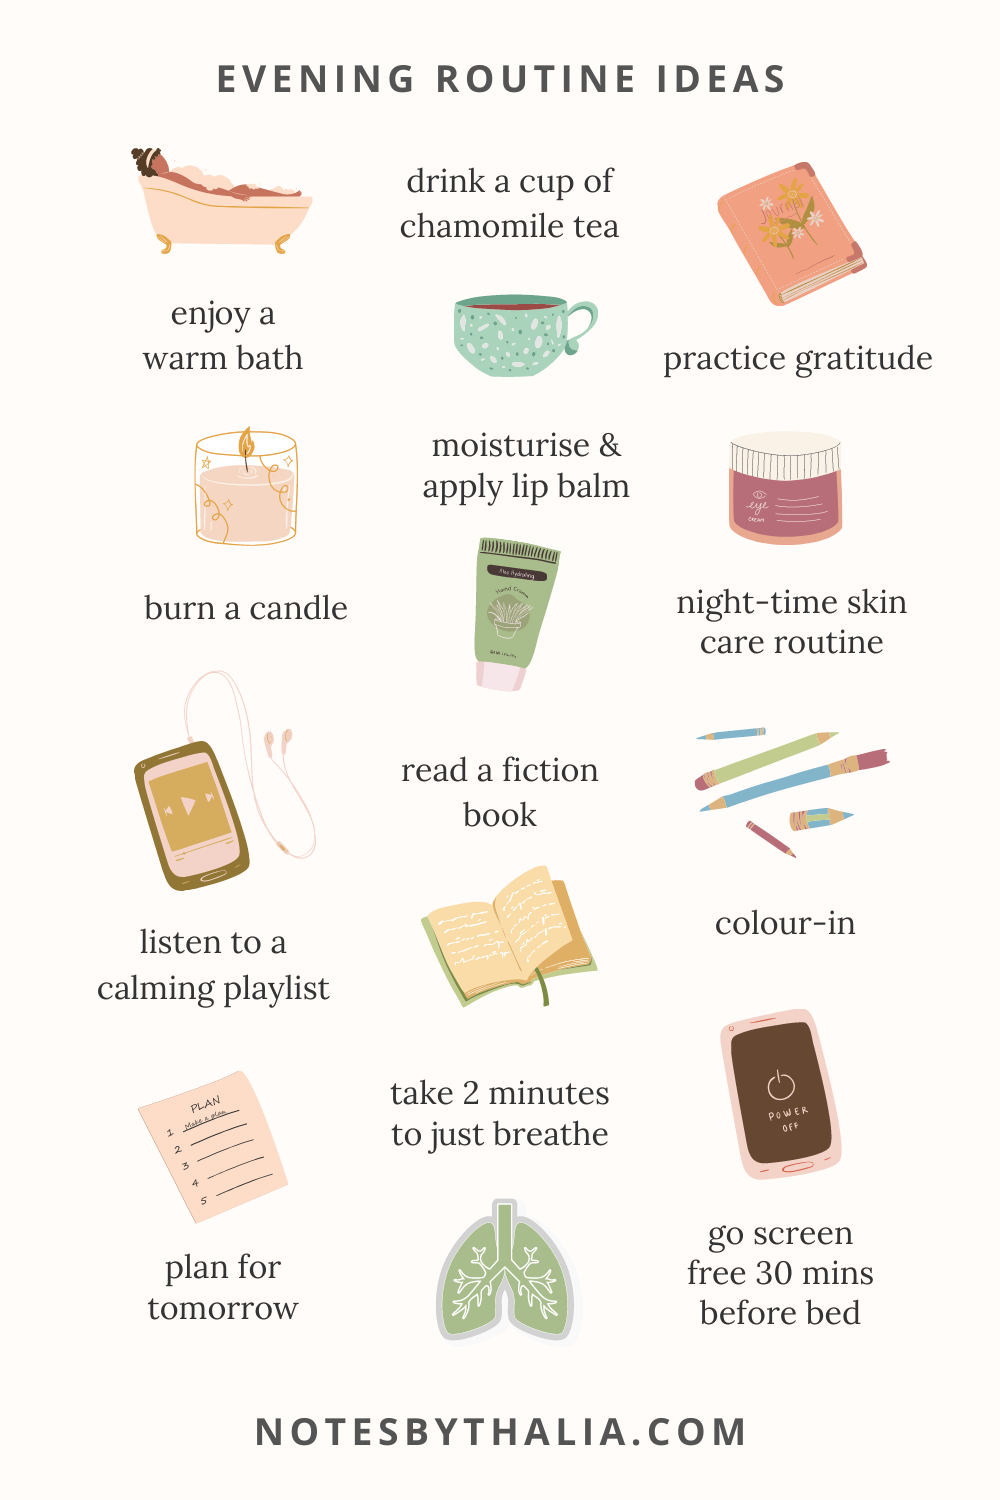 12 Evening Routine Ideas To Help You Relax & Calm The Mind